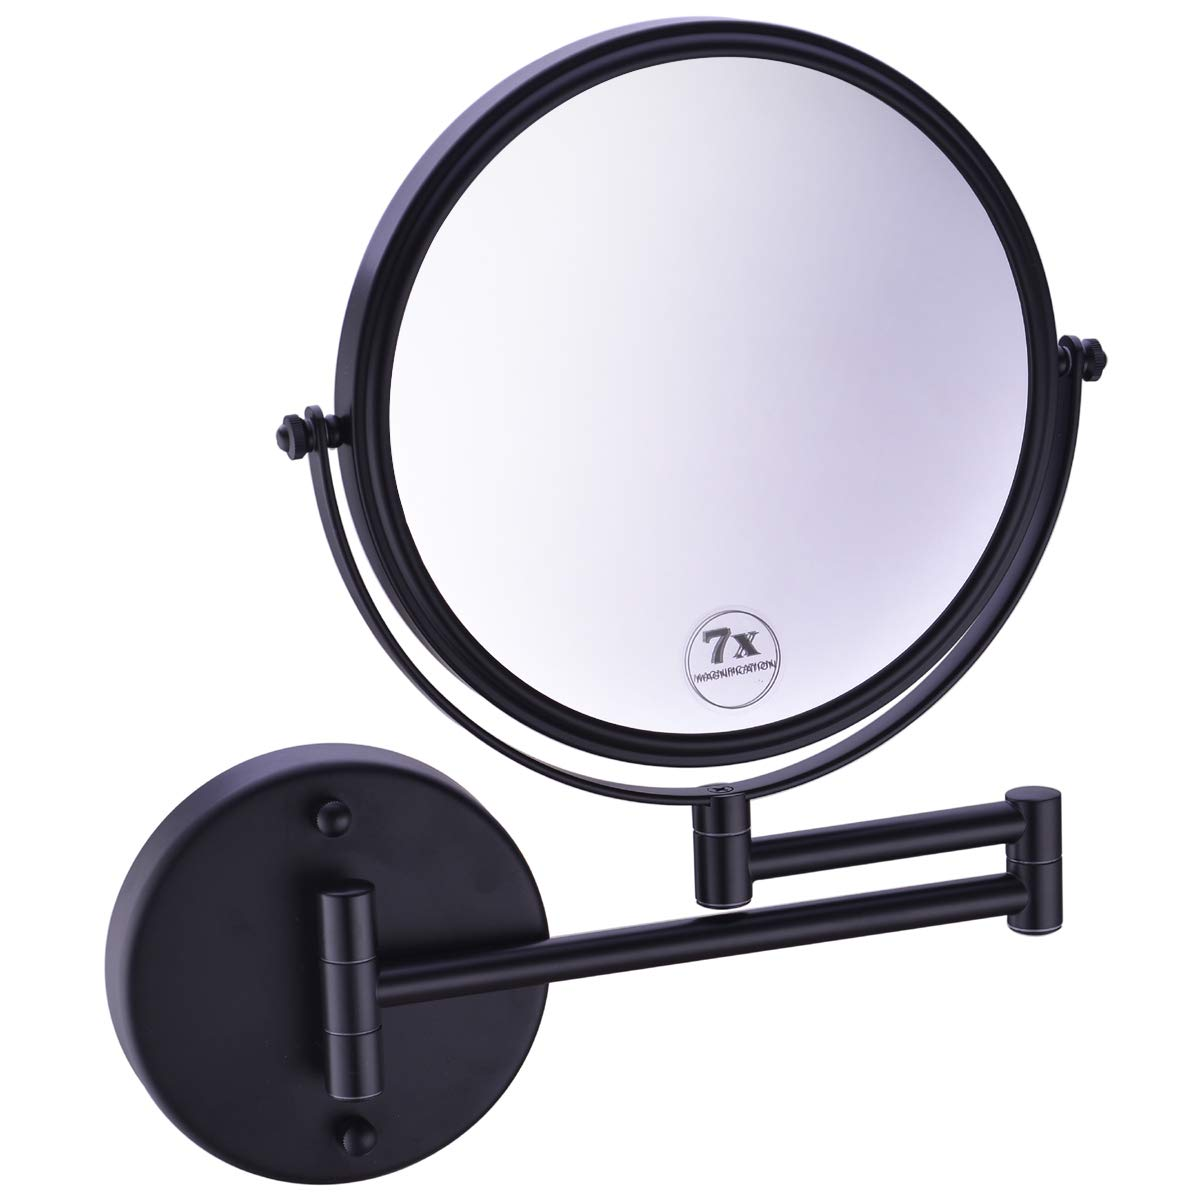 Home Zone Living Makeup Mirror Tri-Fold Vanity Mirror, Touch Control with Dimmable Lighting, 34 LED Lighting, 3X 5X and 10X Magnification, 180 Degree Rotation White